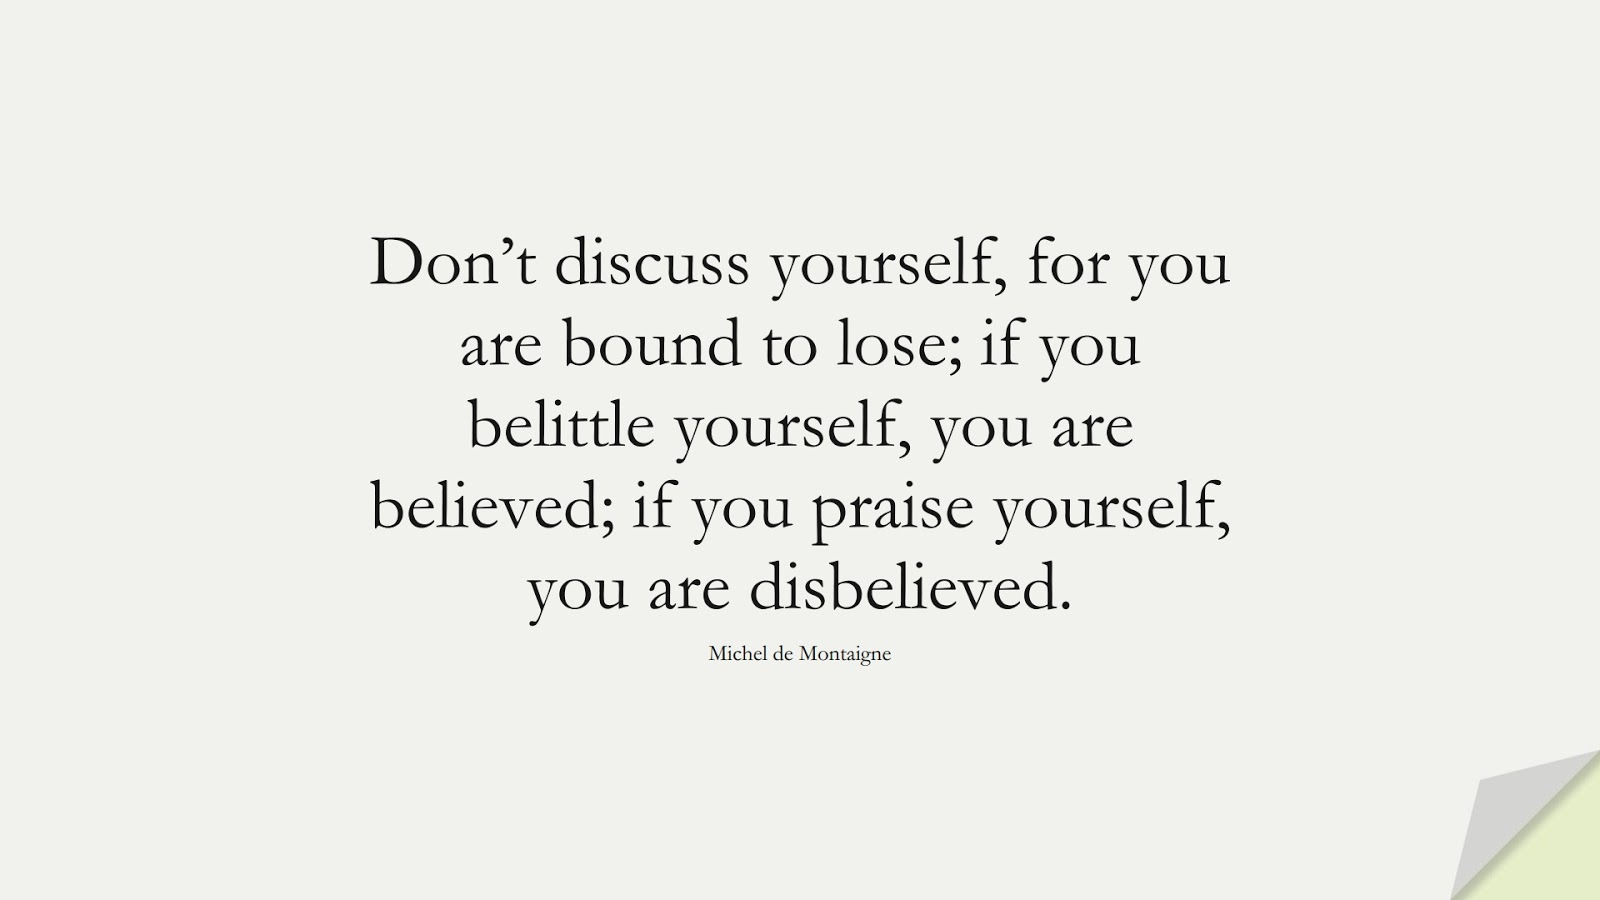 Don't discuss yourself, for you are bound to lose; if you belittle yourself, you are believed; if you praise yourself, you are disbelieved. (Michel de Montaigne);  #SelfEsteemQuotes